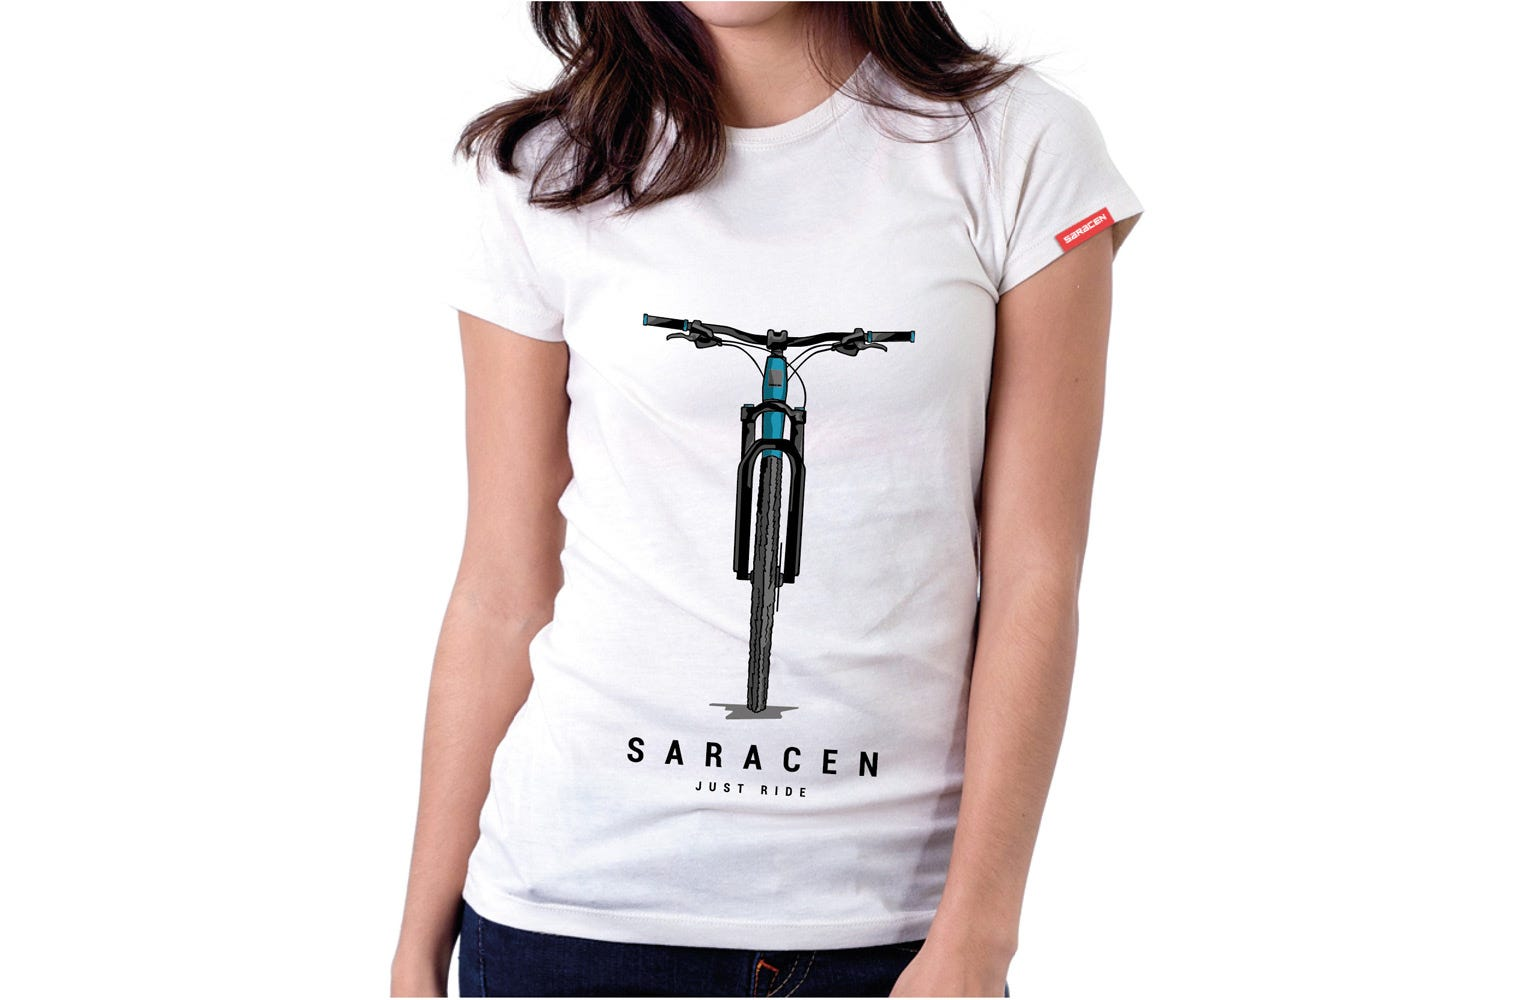 Saracen Womens T-Shirt Front View Bike